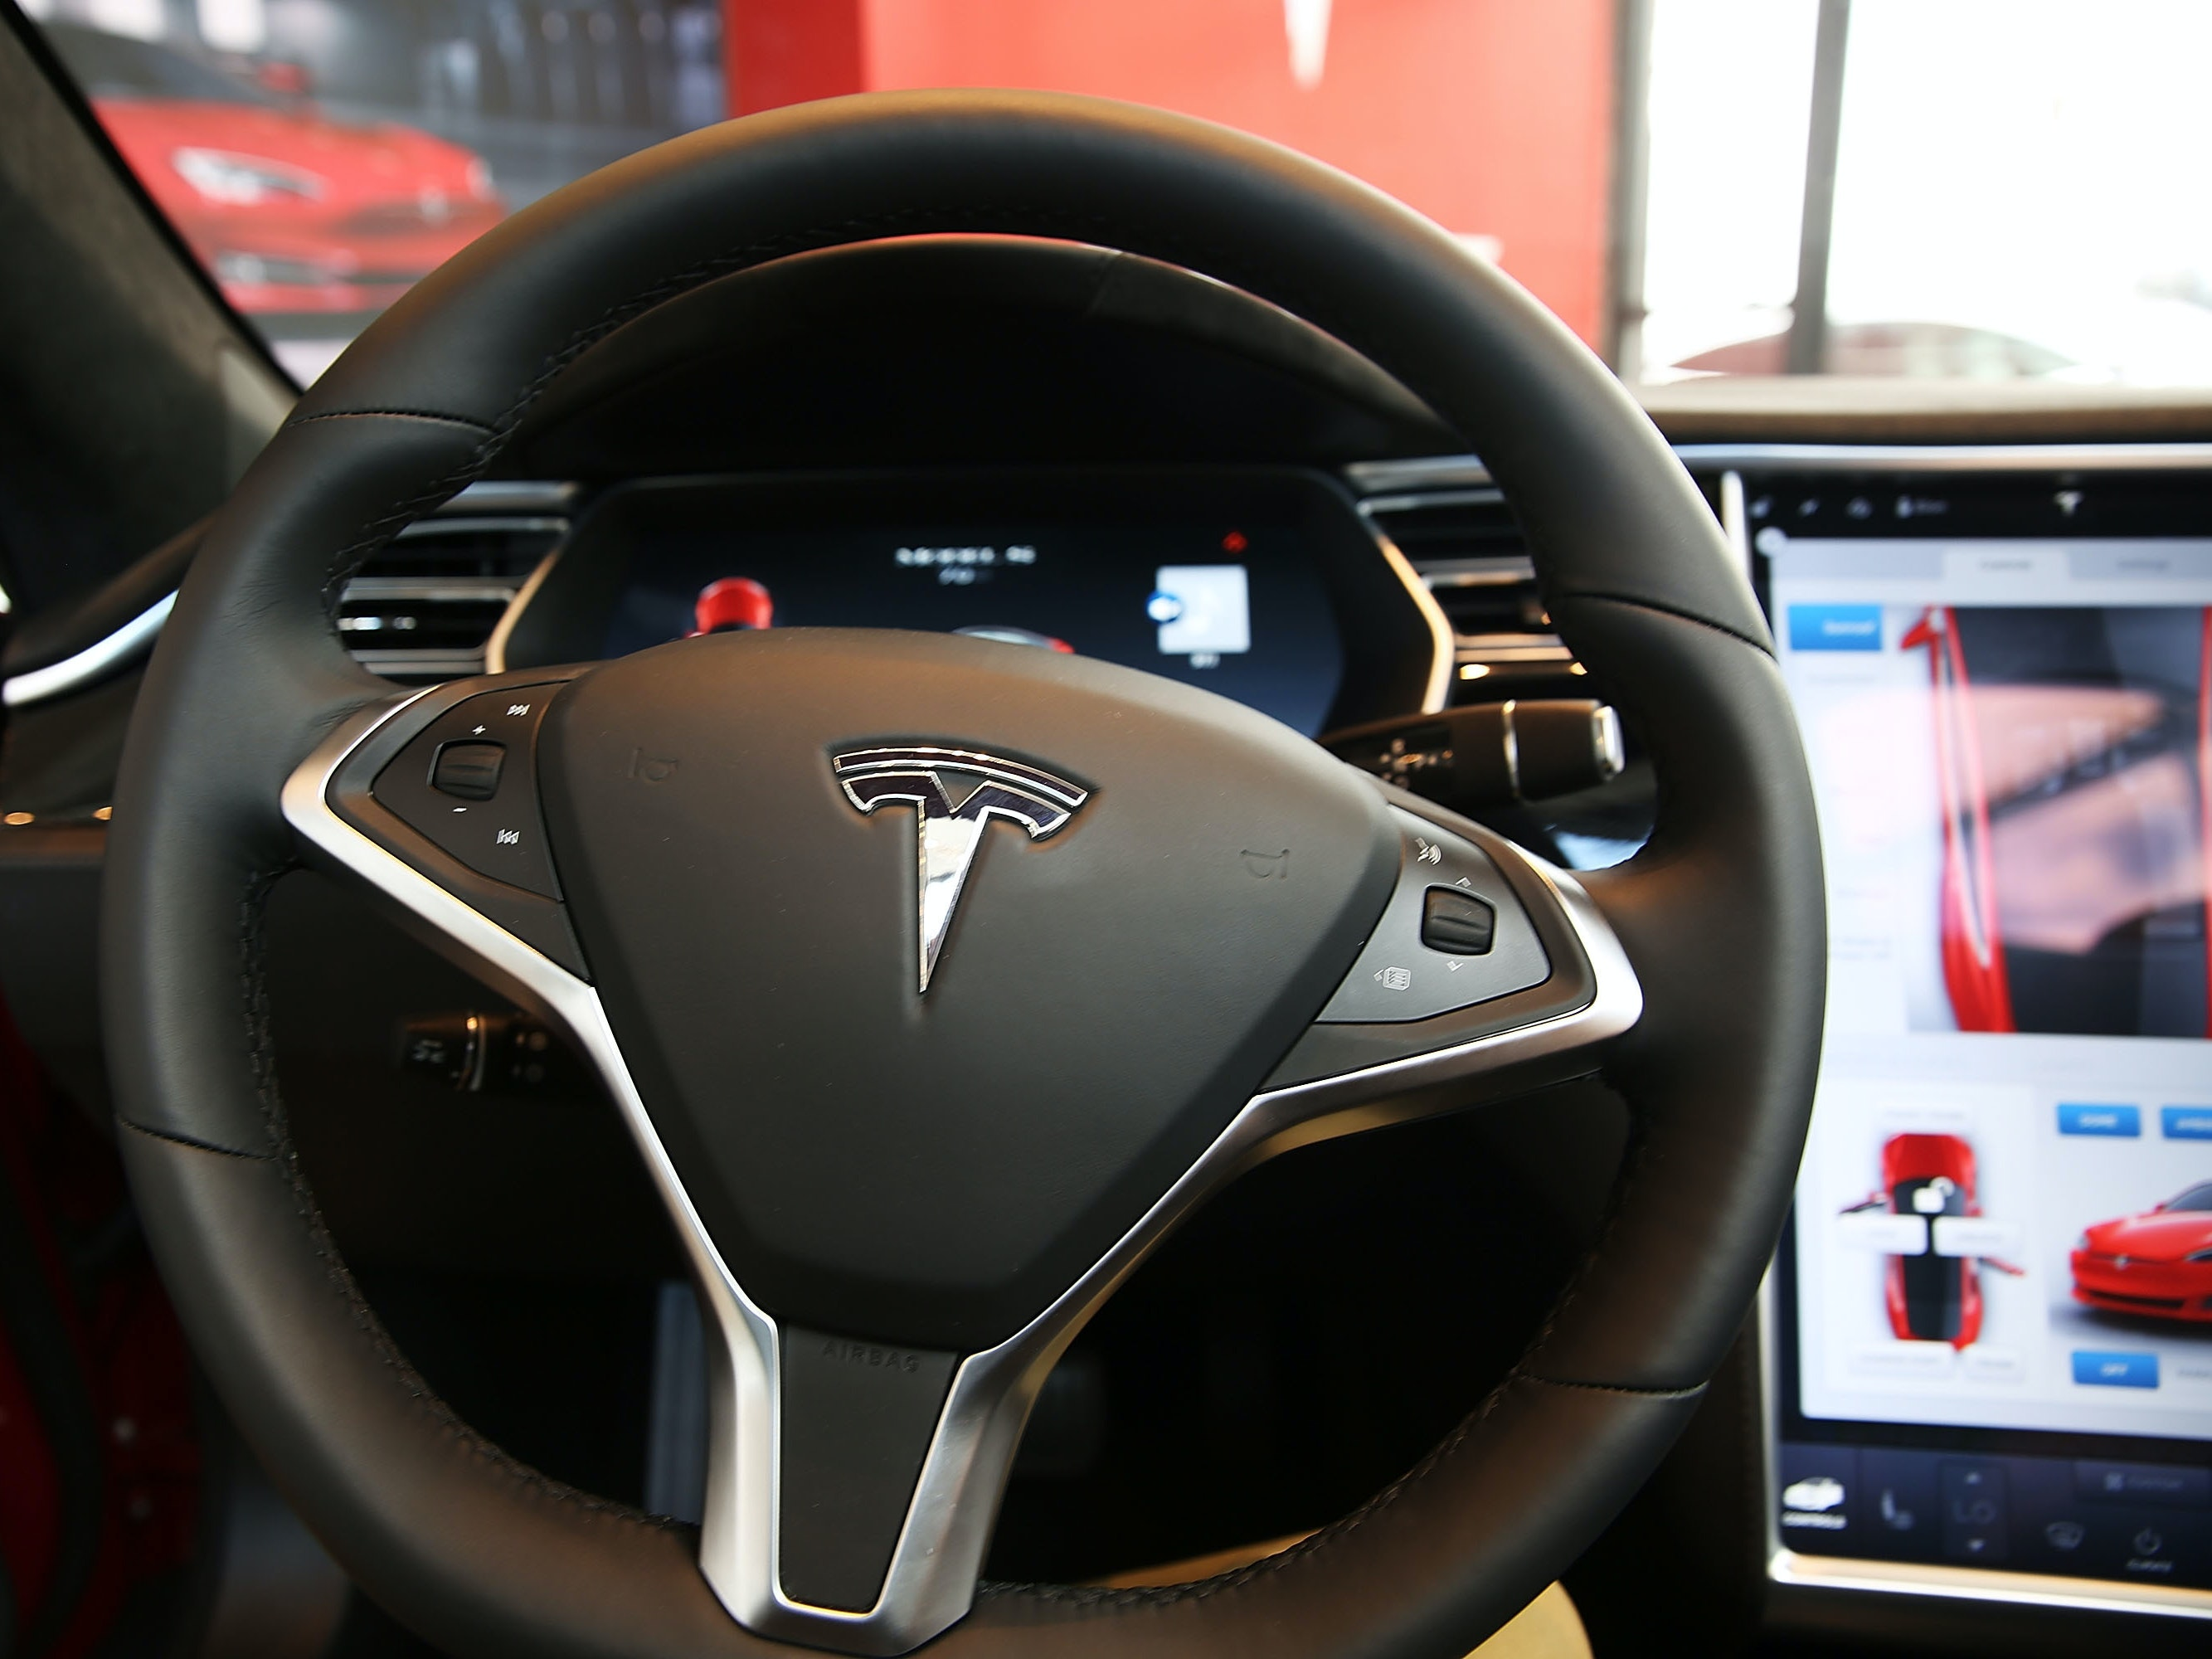 The NHTSA's Final Ruling Just Cleared Tesla in May's Deadly Autopilot Crash